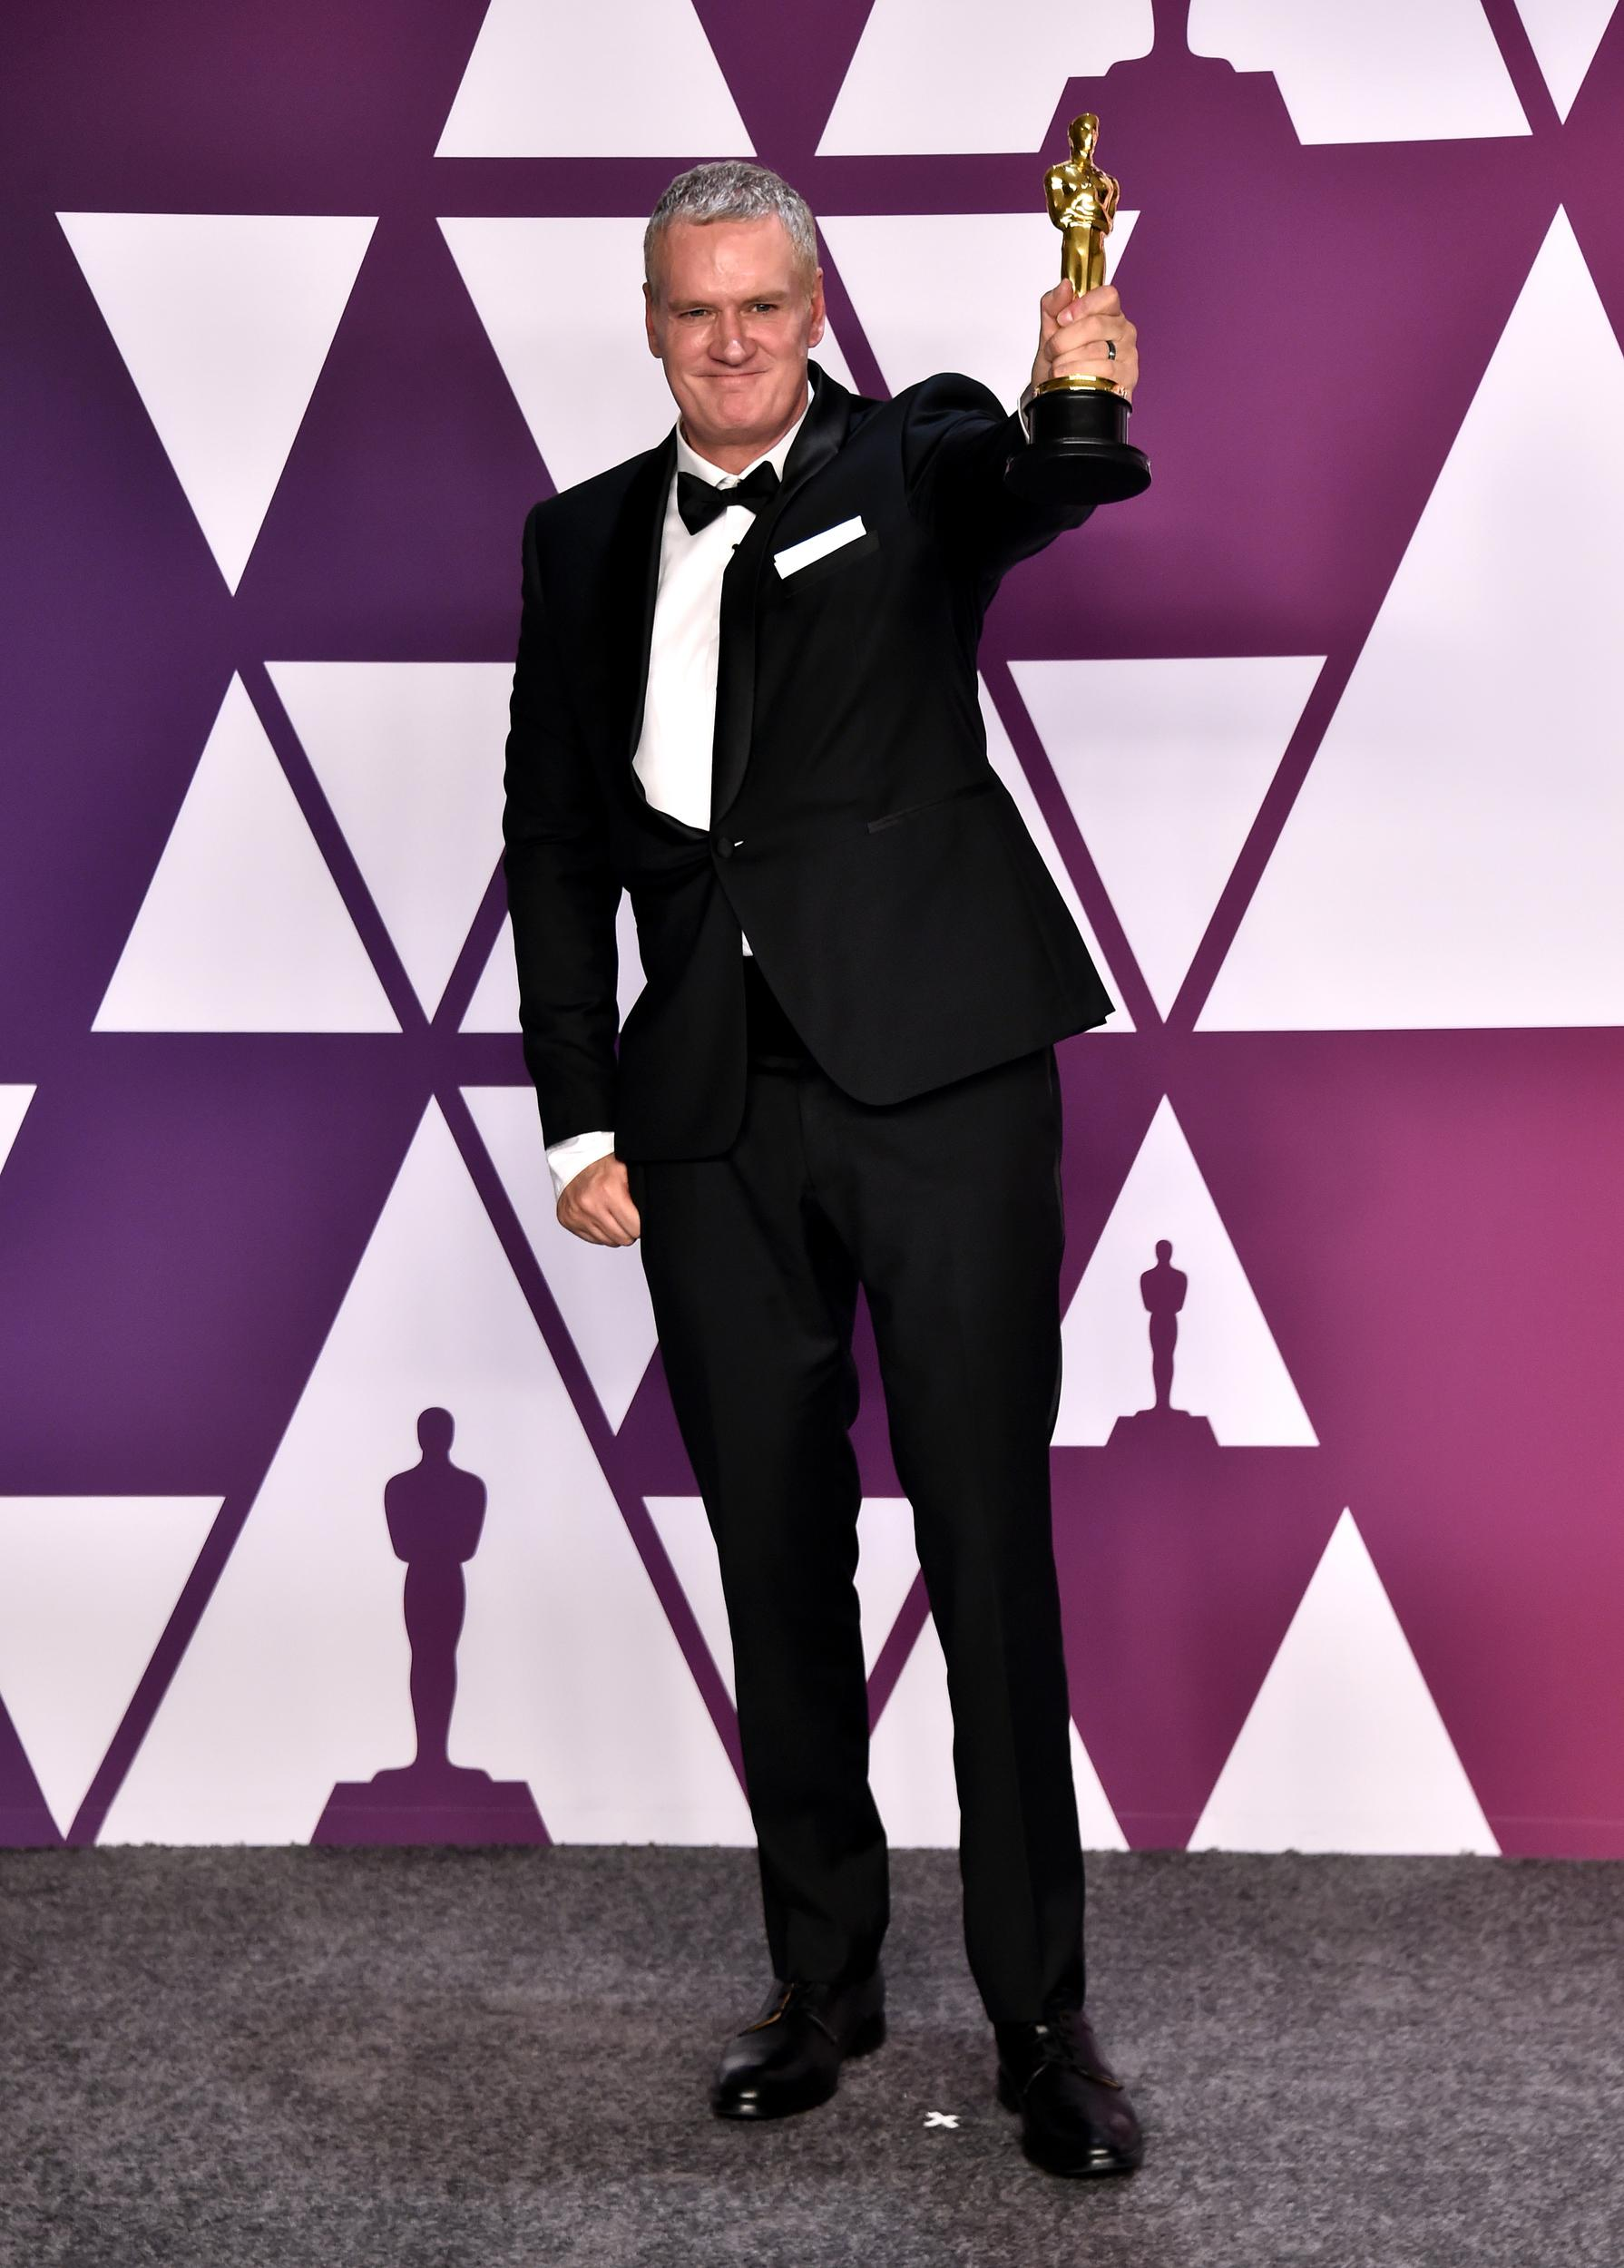 John Ottman with the award for Film Editing for Bohemian Rhapsody in the press room at the 91st Academy Awards held at the Dolby Theatre in Hollywood, Los Angeles, USA.